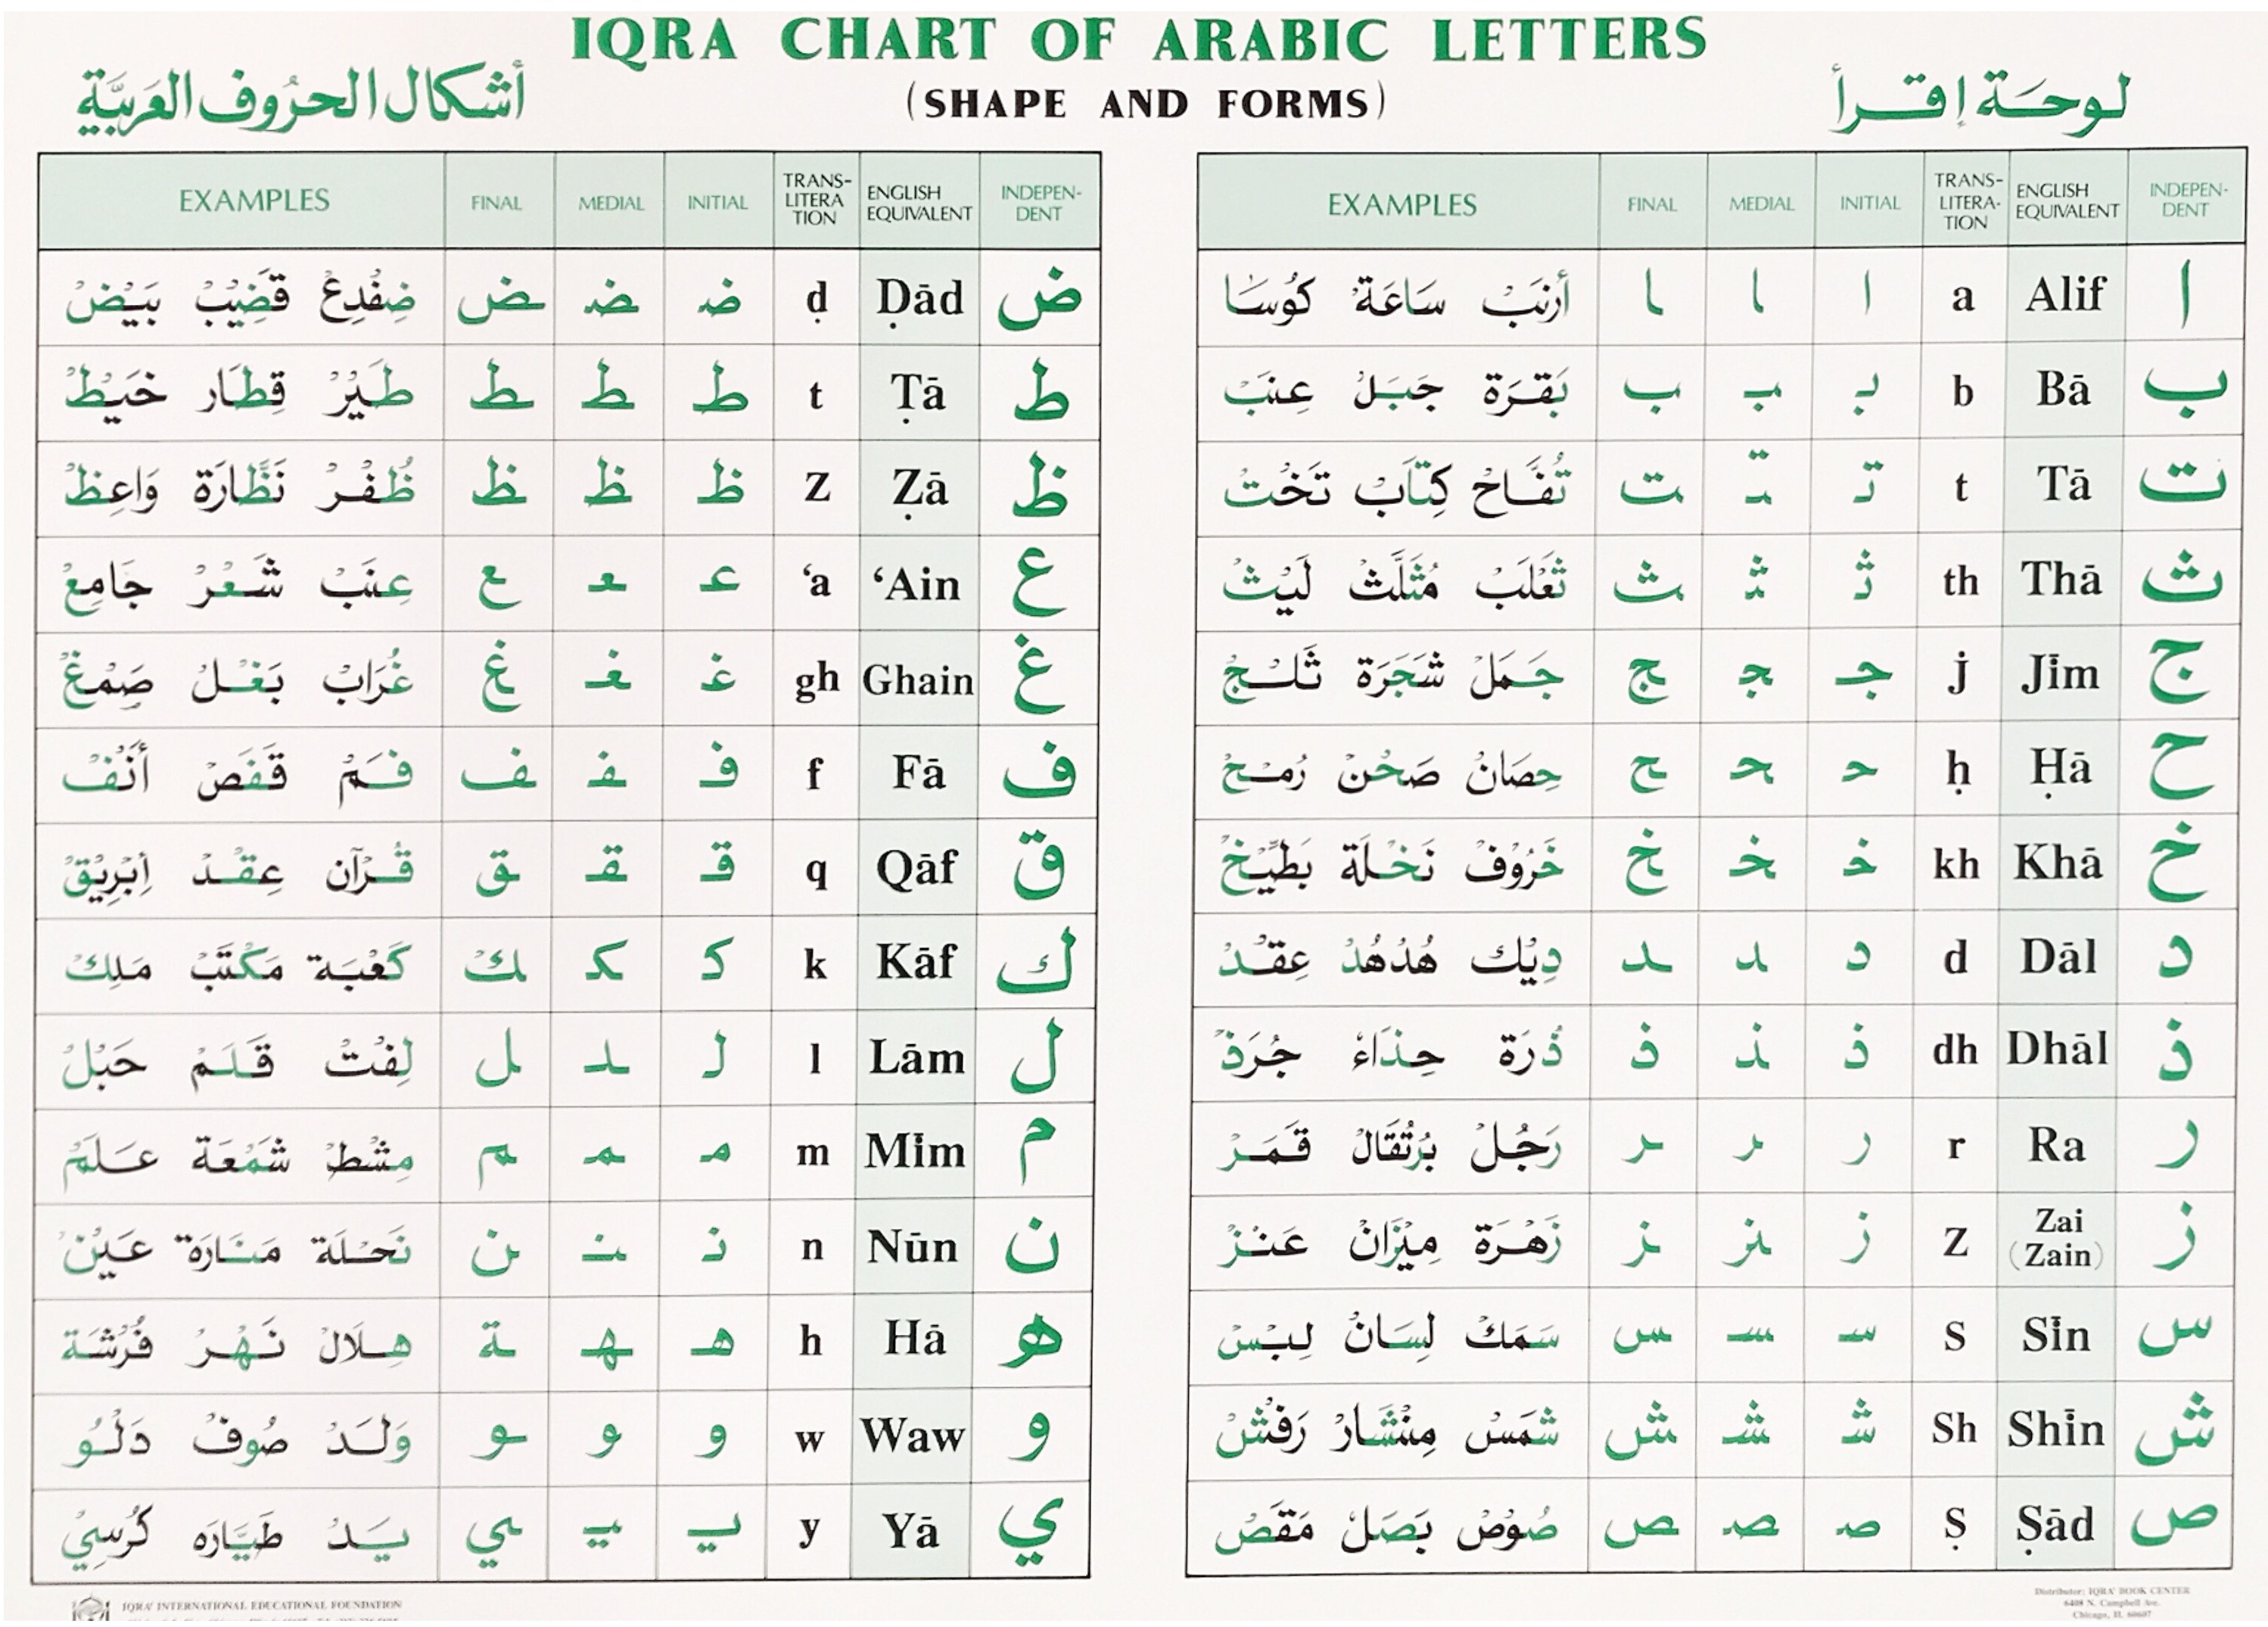 Chart of Arabic letters Shapes and Form (IQRA)